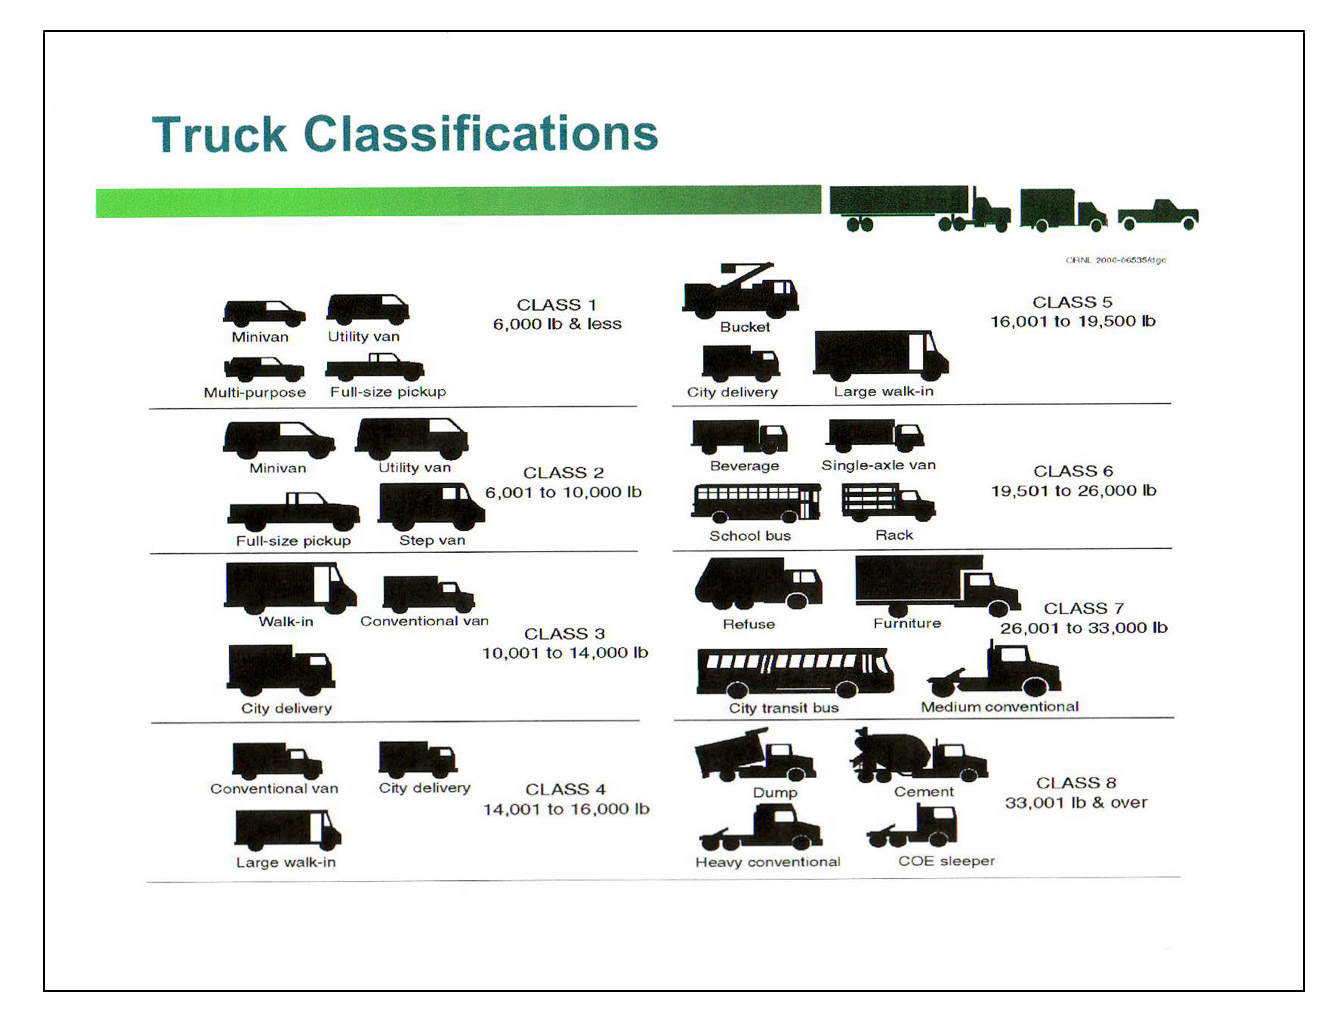 freightliner cab and chassis vocational reference guide